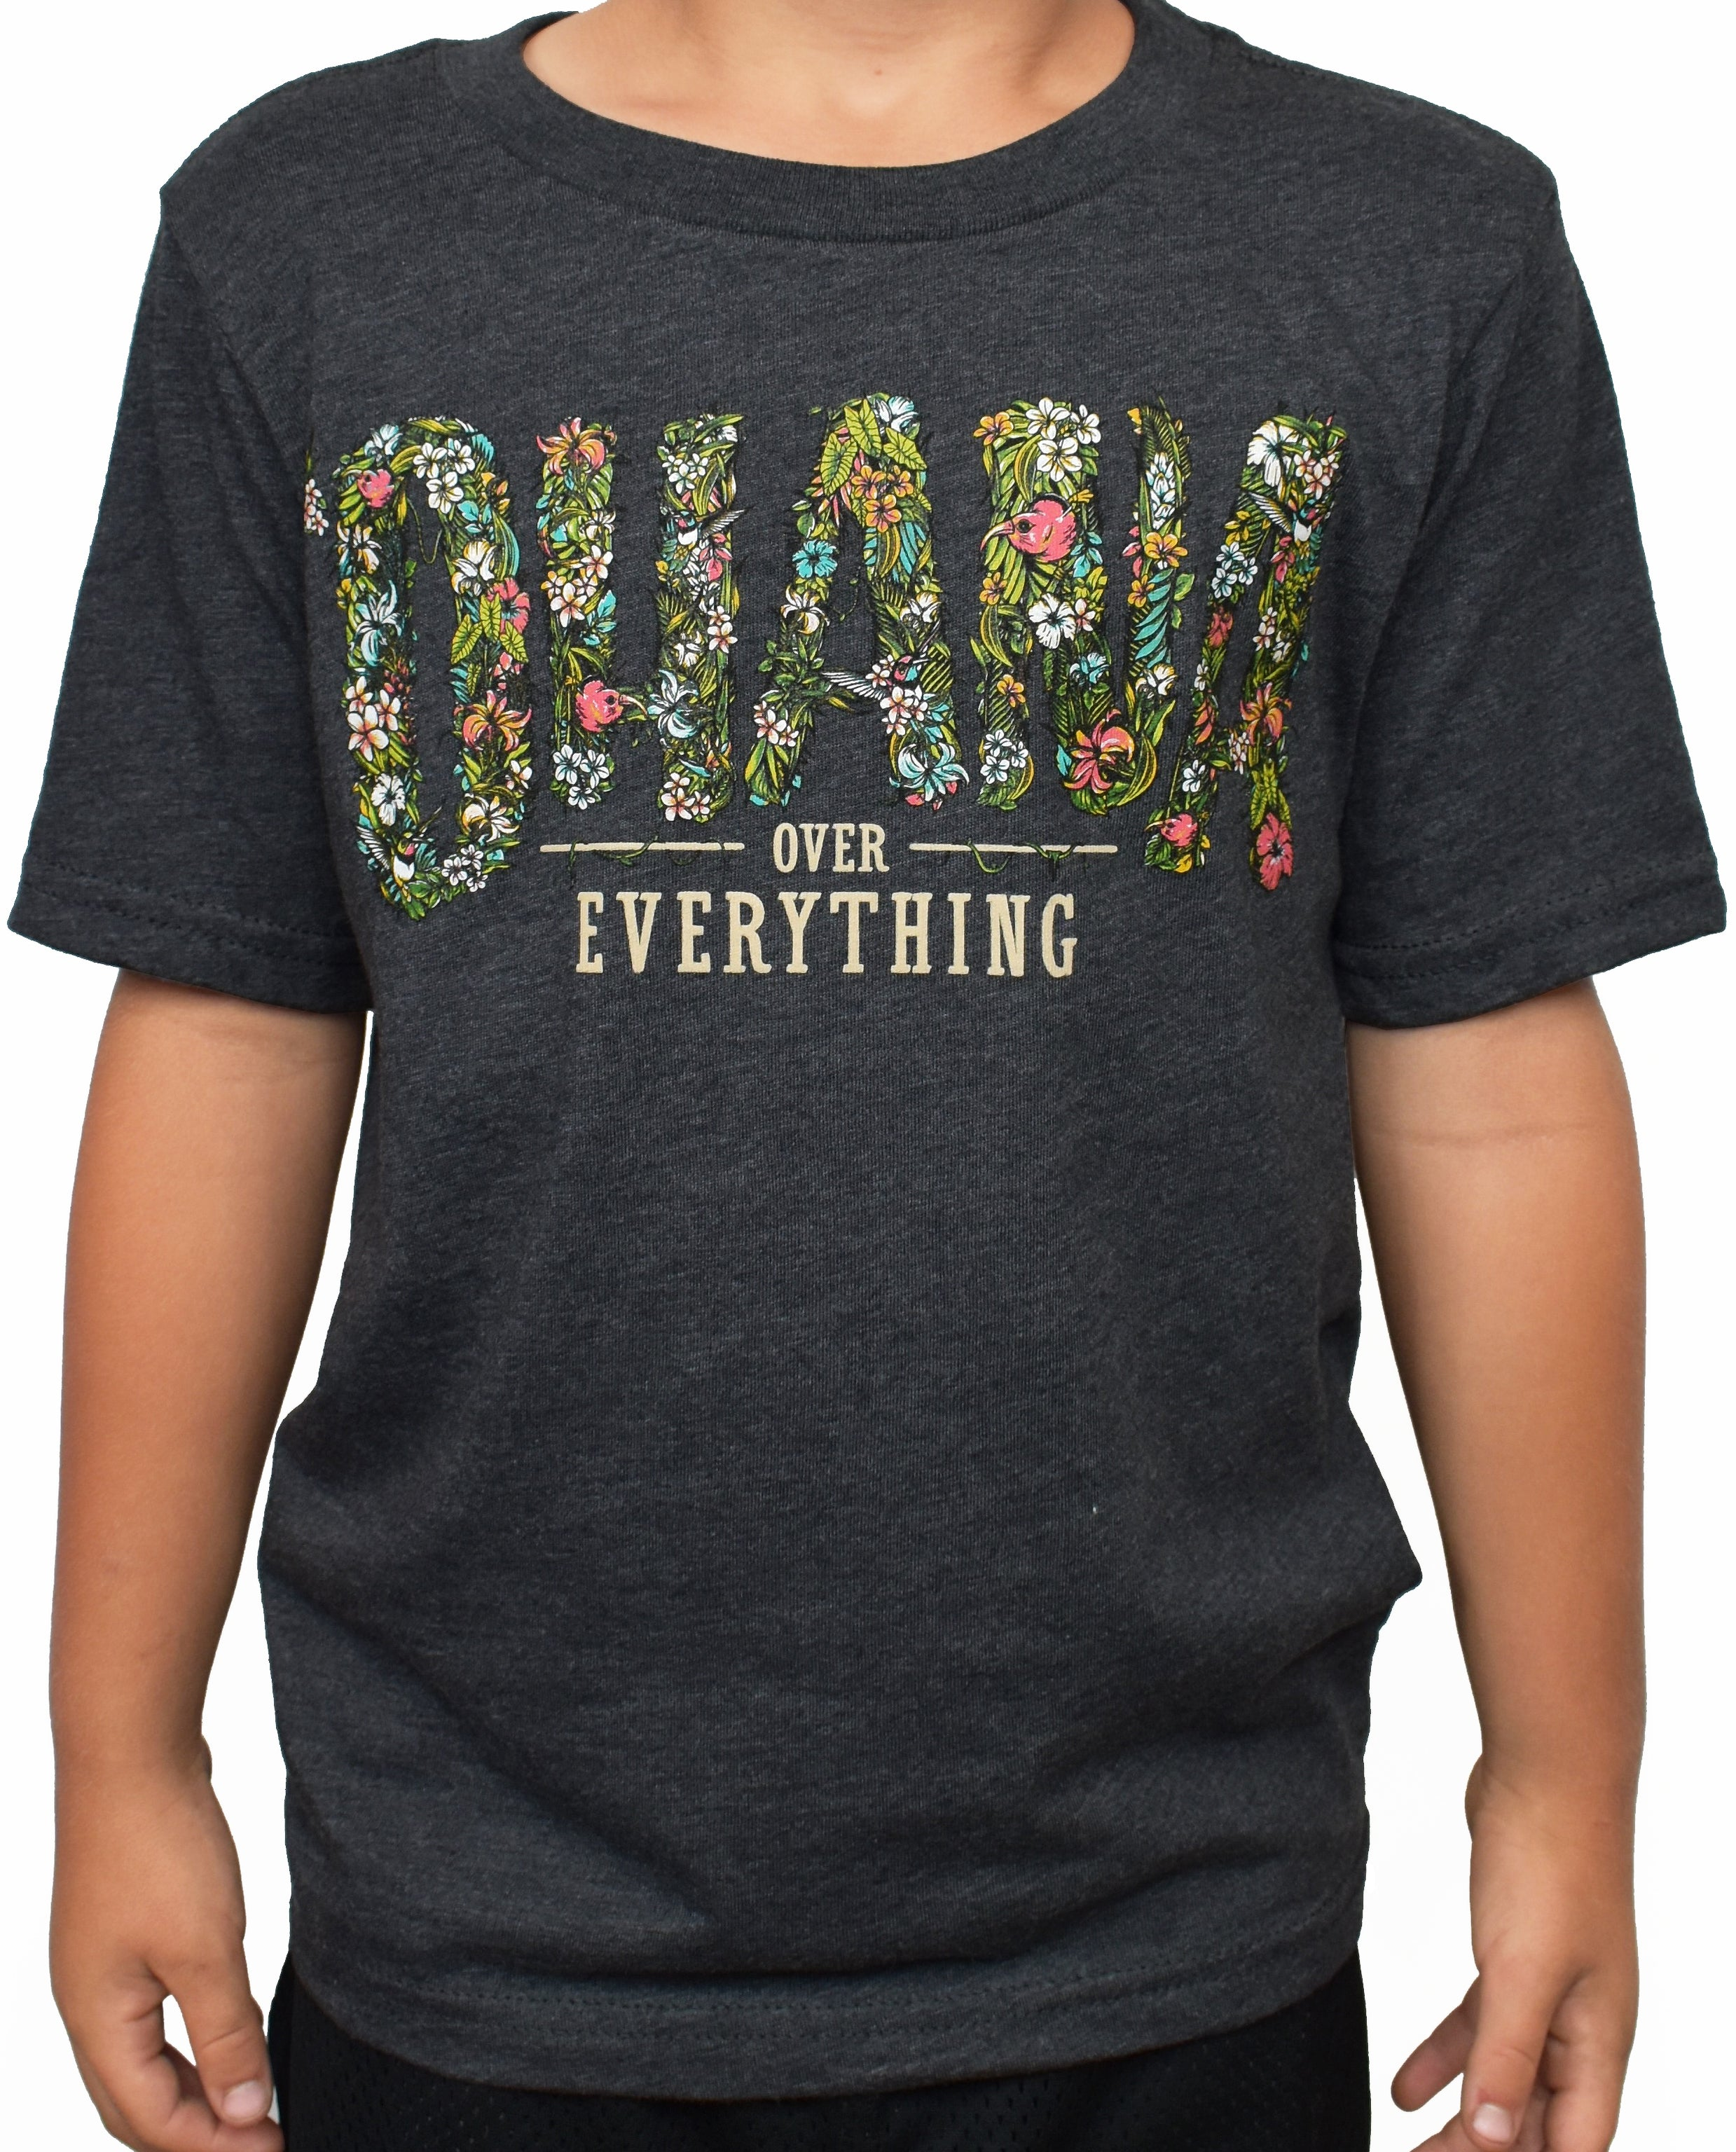 Kid's 'Ohana Over Everything' Tee - Charcoal